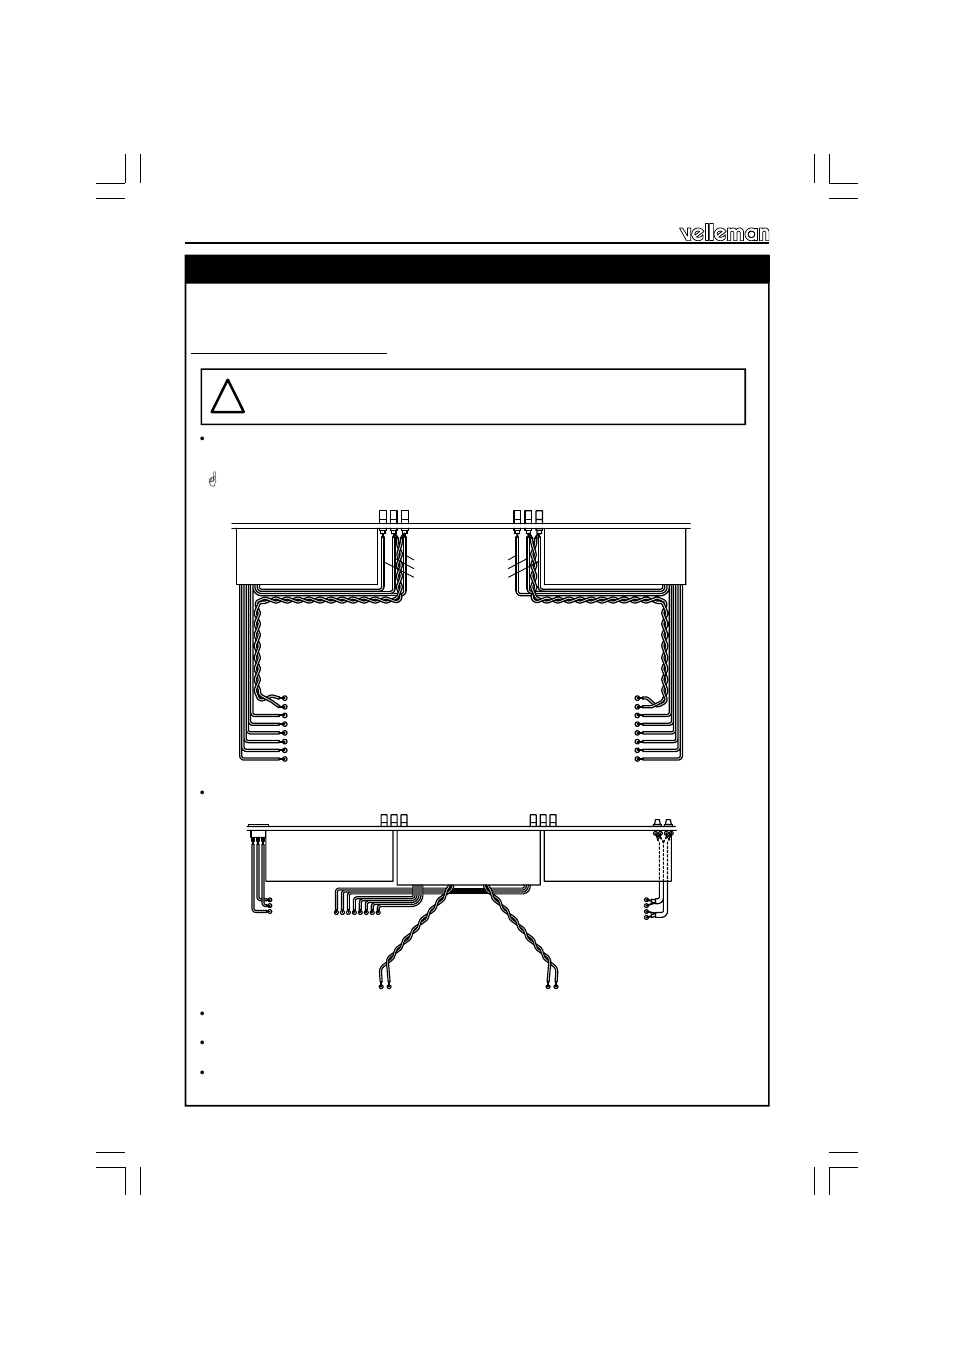 medium resolution of assembly and wiring connection of the transformers fig 9 0 fig 10 velleman projects k4040 assembly instructions user manual page 18 28